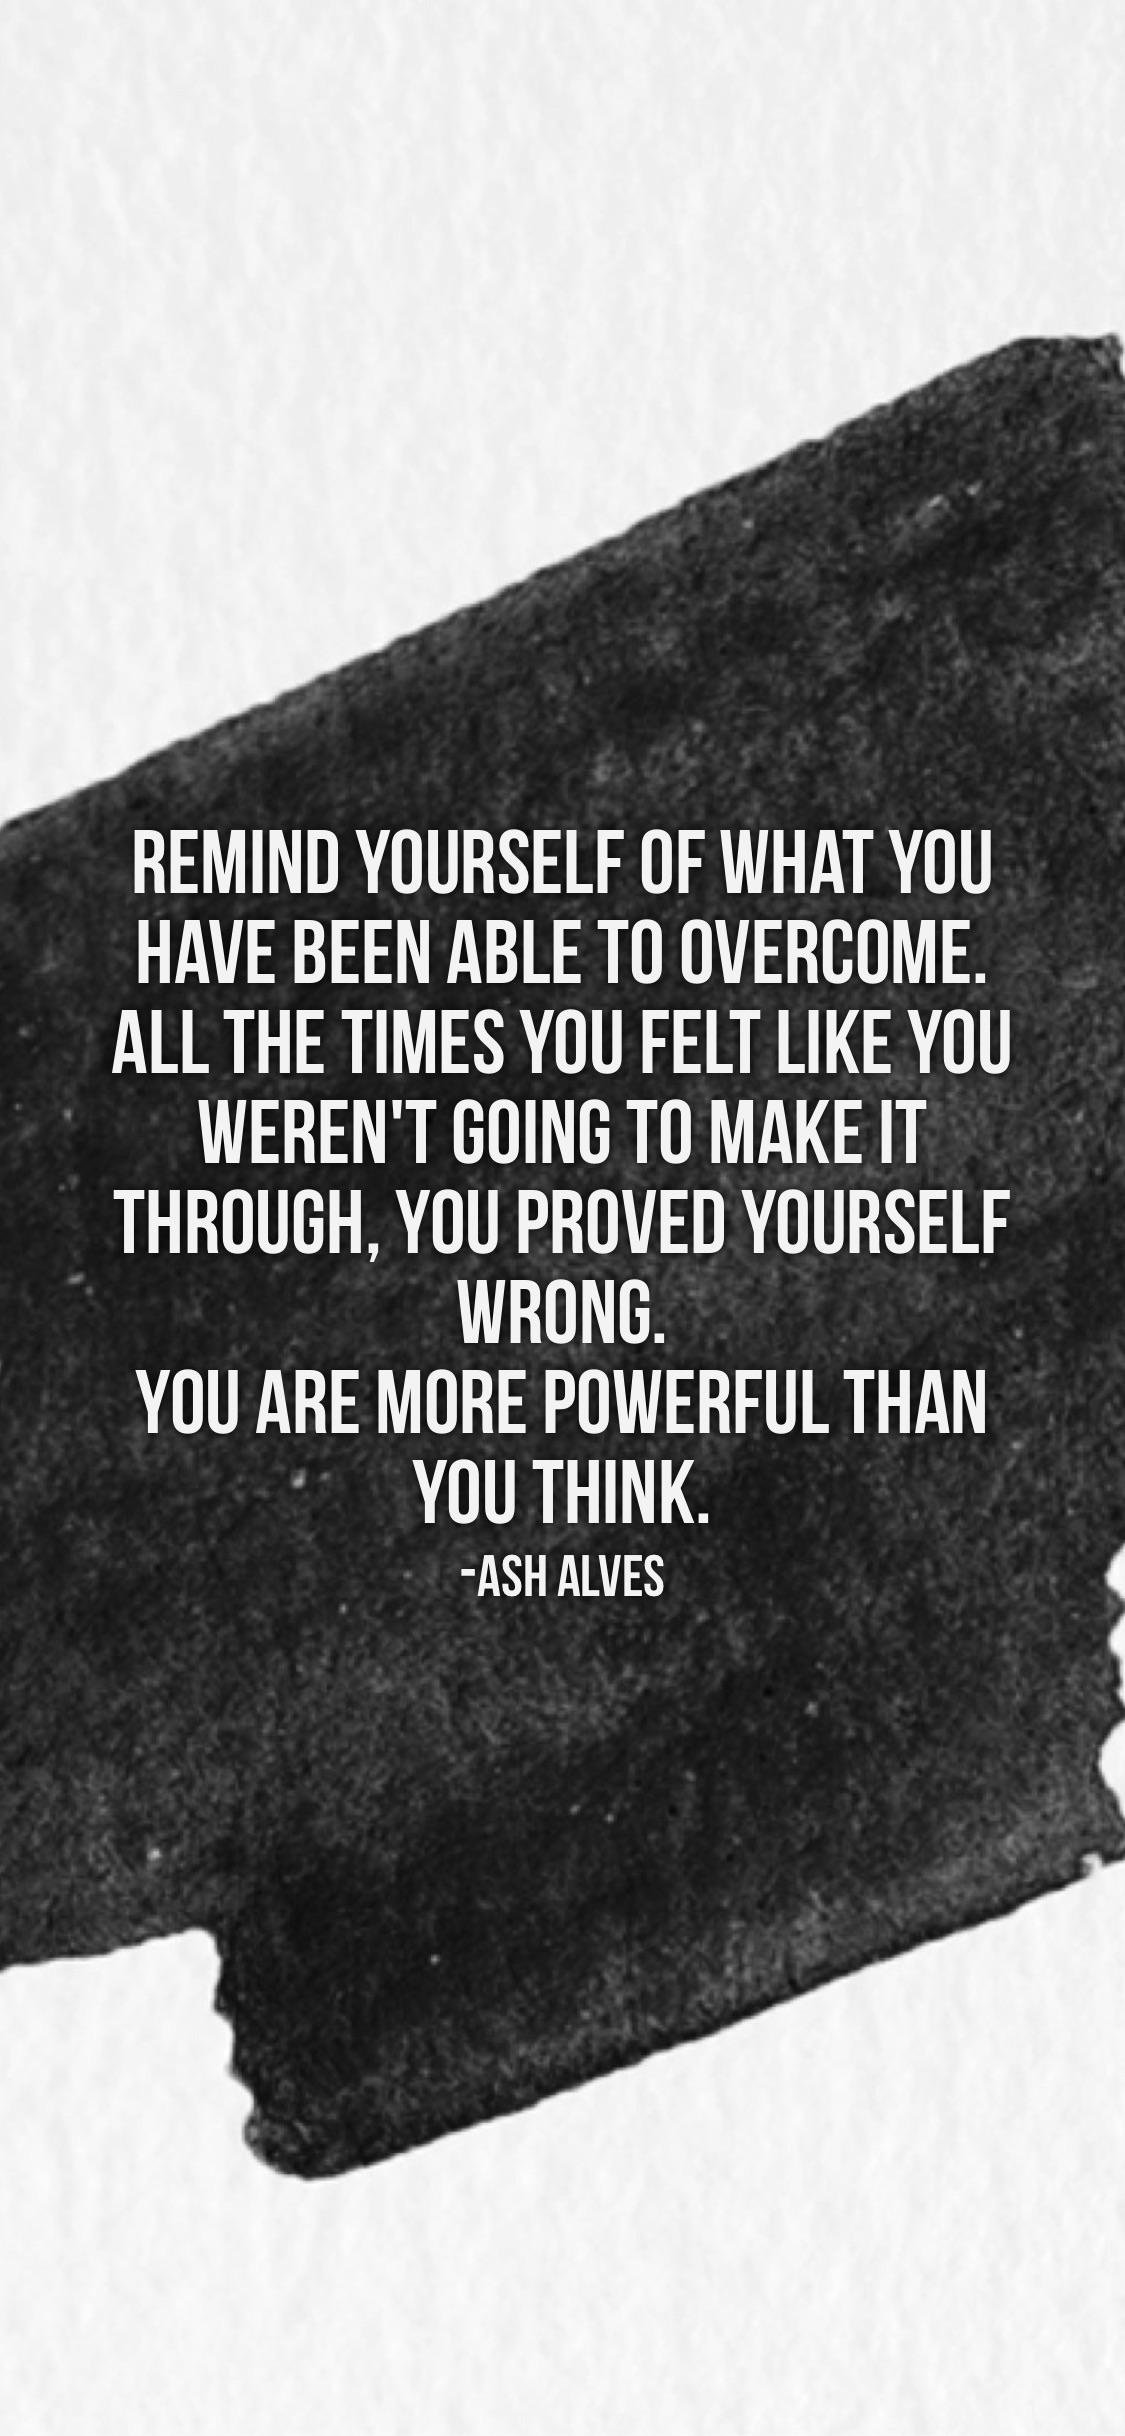 [IMAGE] You are powerful!